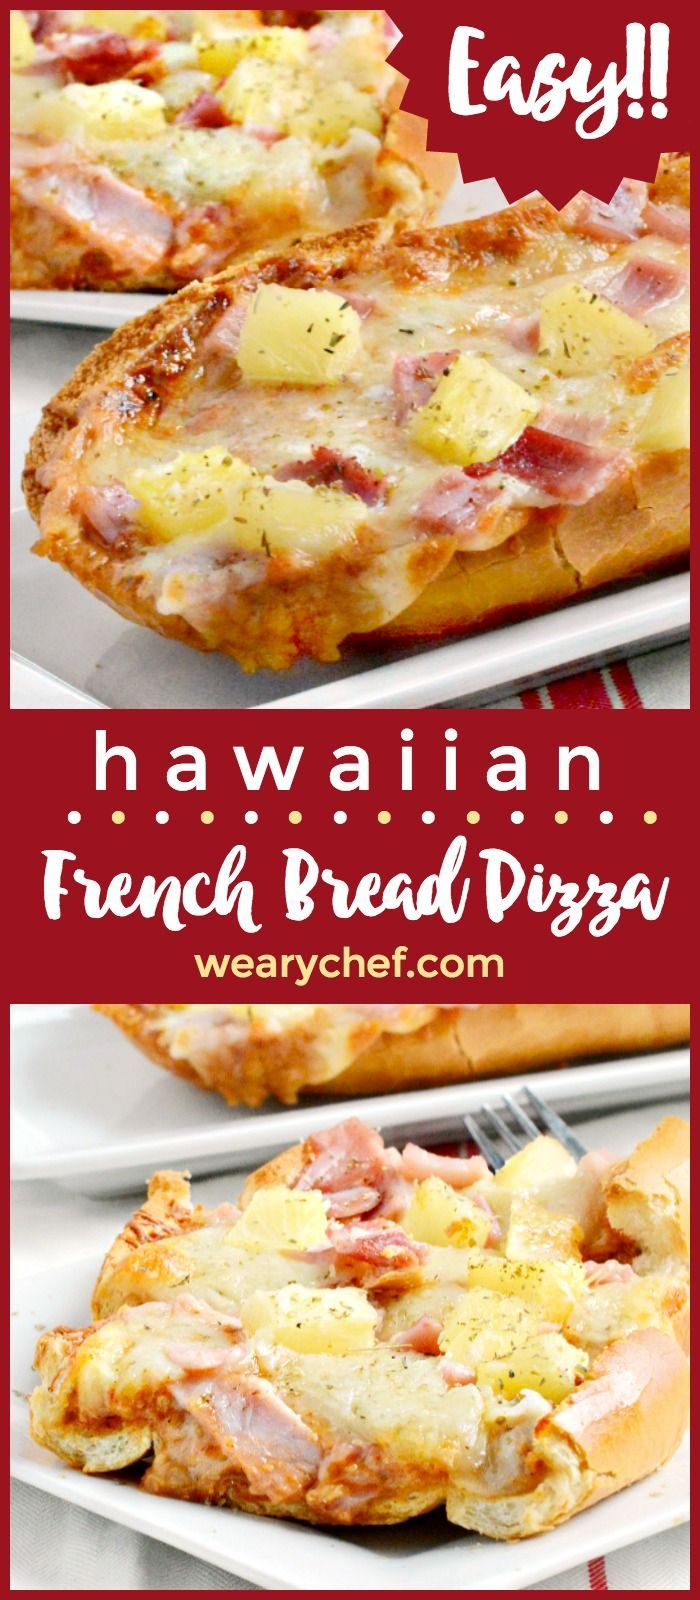 Hawaiian French Bread Pizza is super quick and easy, with the perfect balance of sweet, salty, and a little spicy. Your family will love this easy dinner recipe!